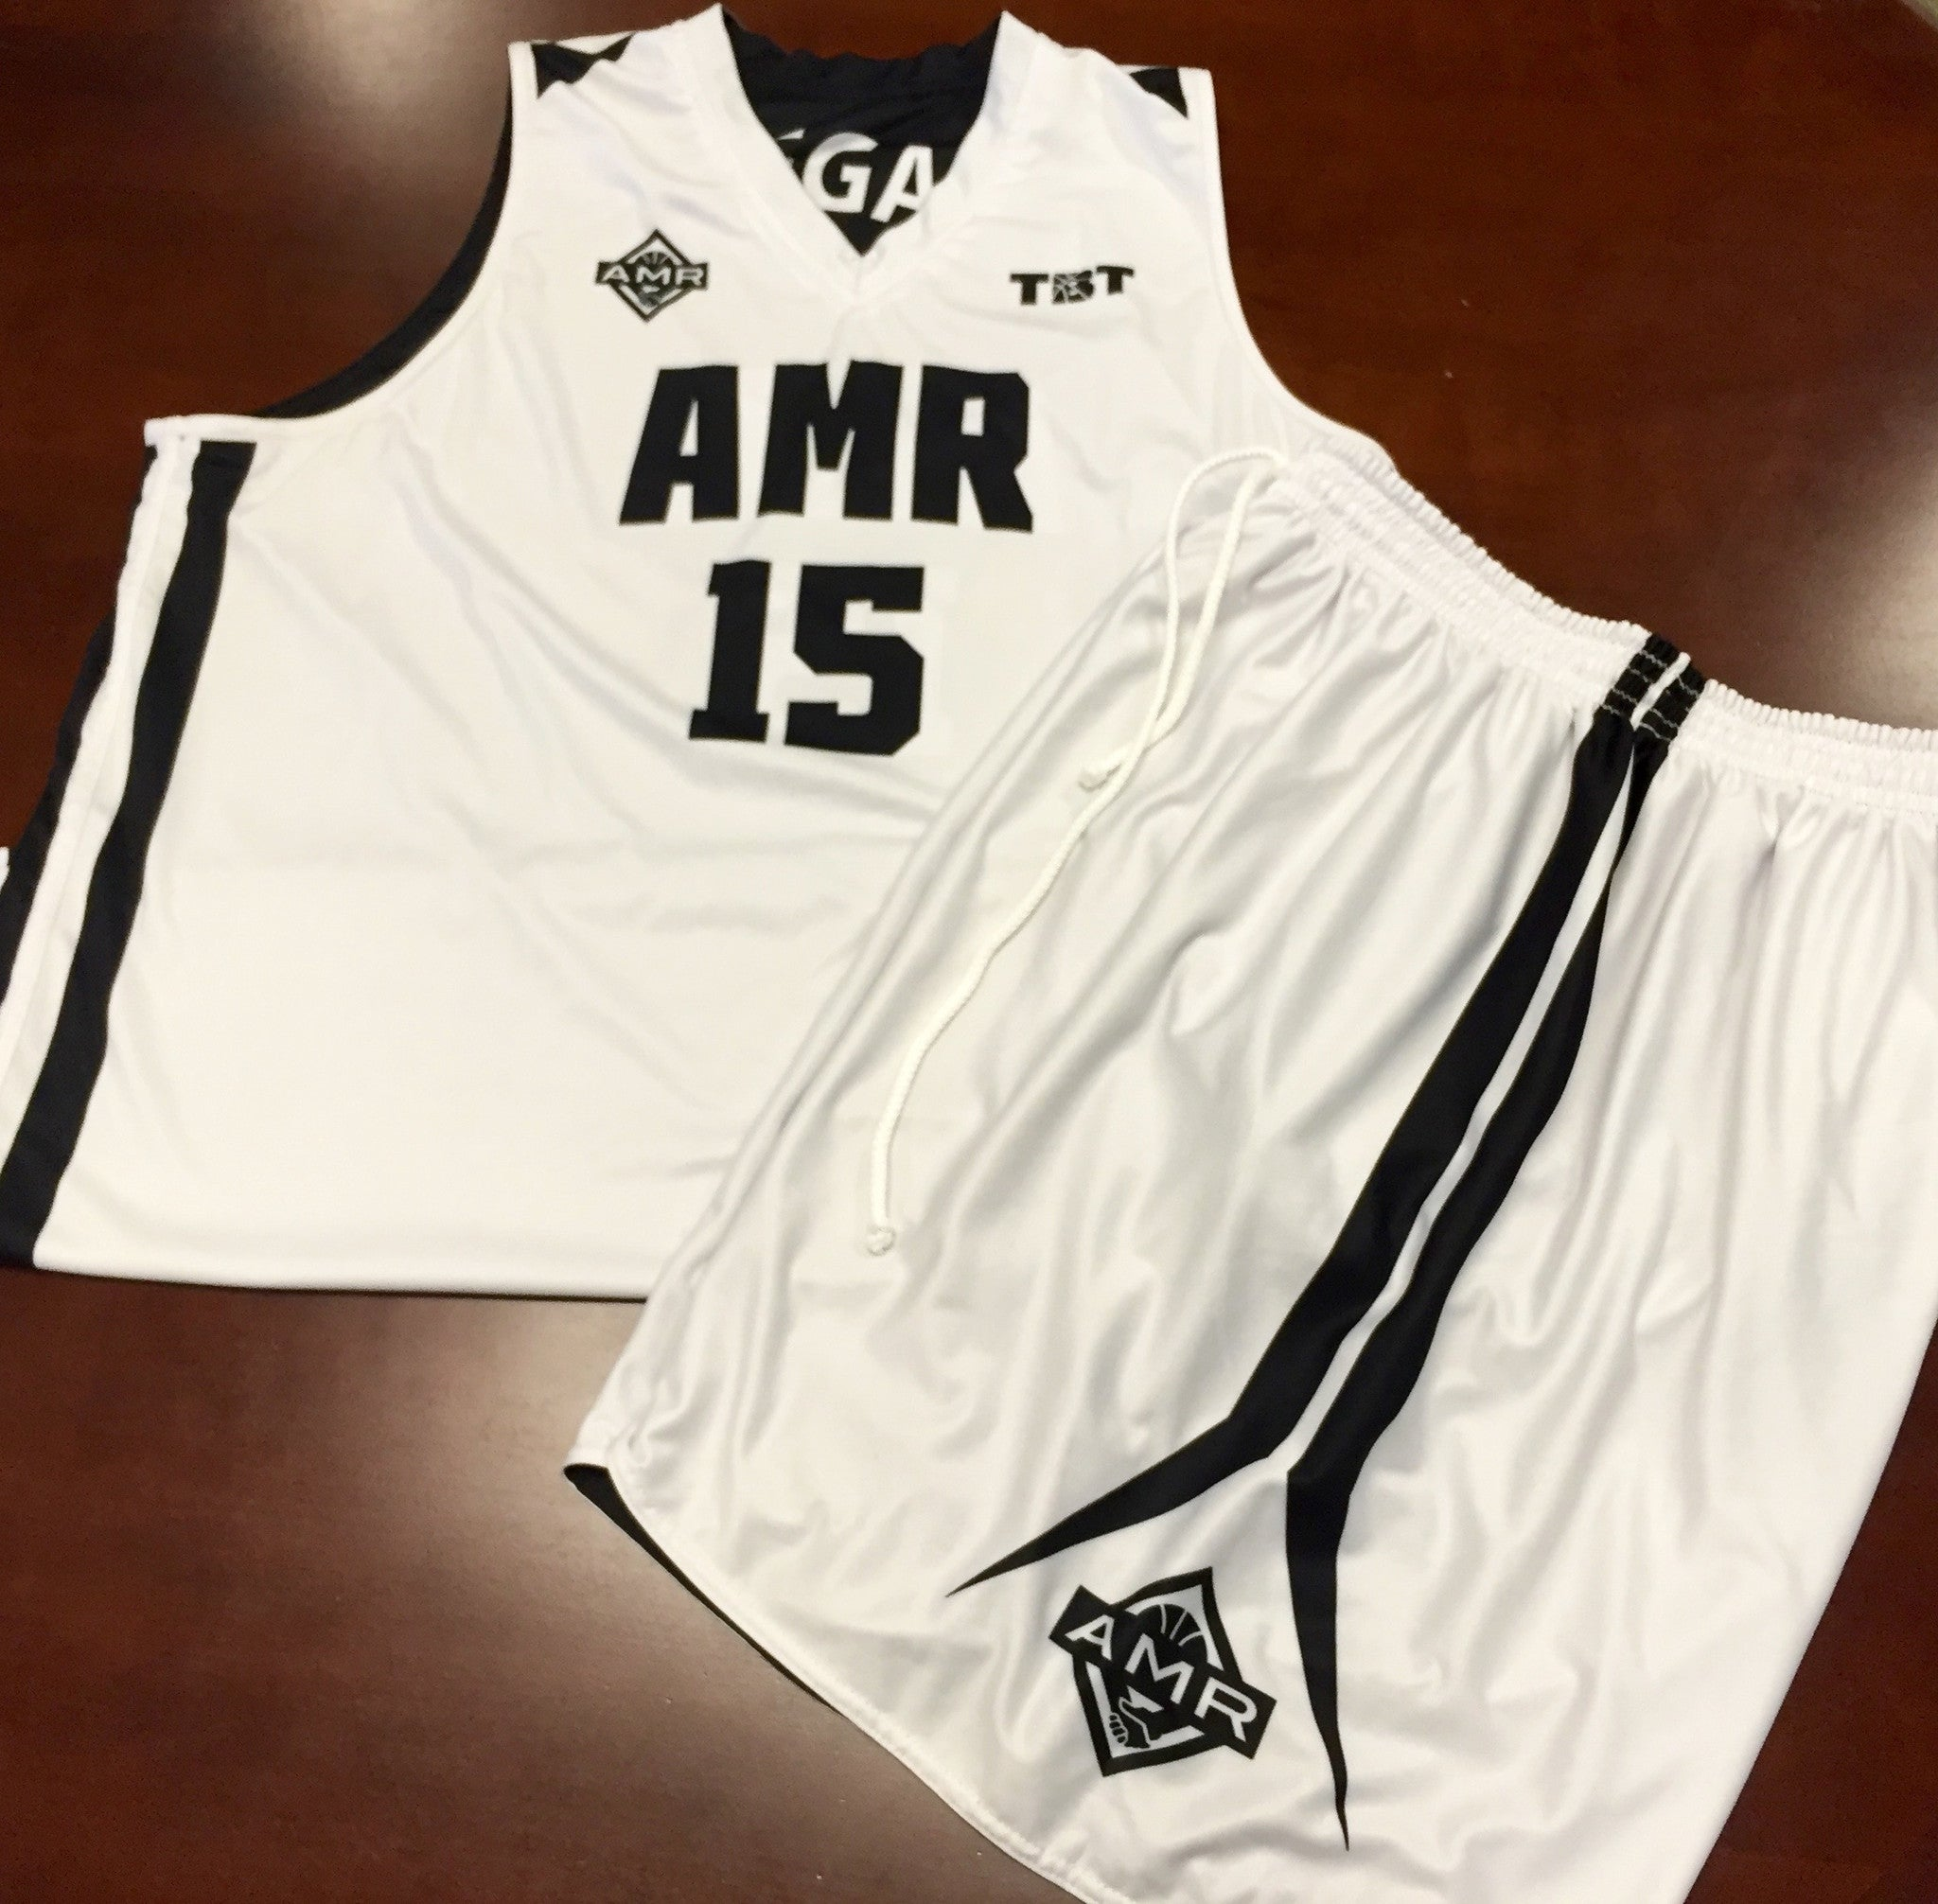 AMR - 2015 Official Team Jersey